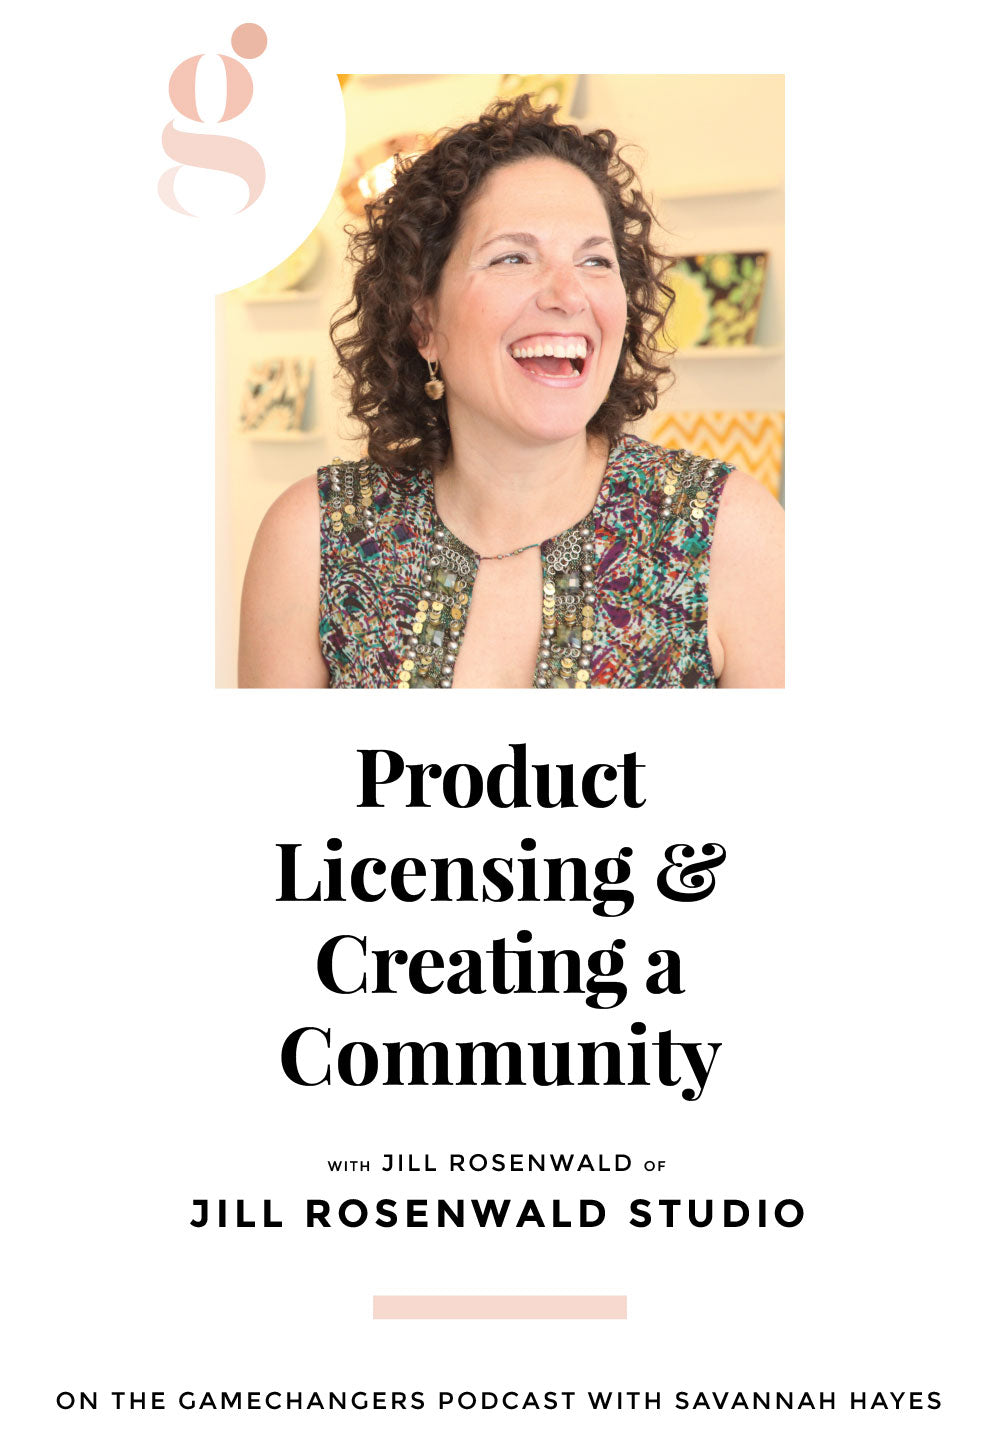 Jill Rosenwald Studio on Gamechangers: the Podcast for Creative Entrepreneurs with Savannah Hayes